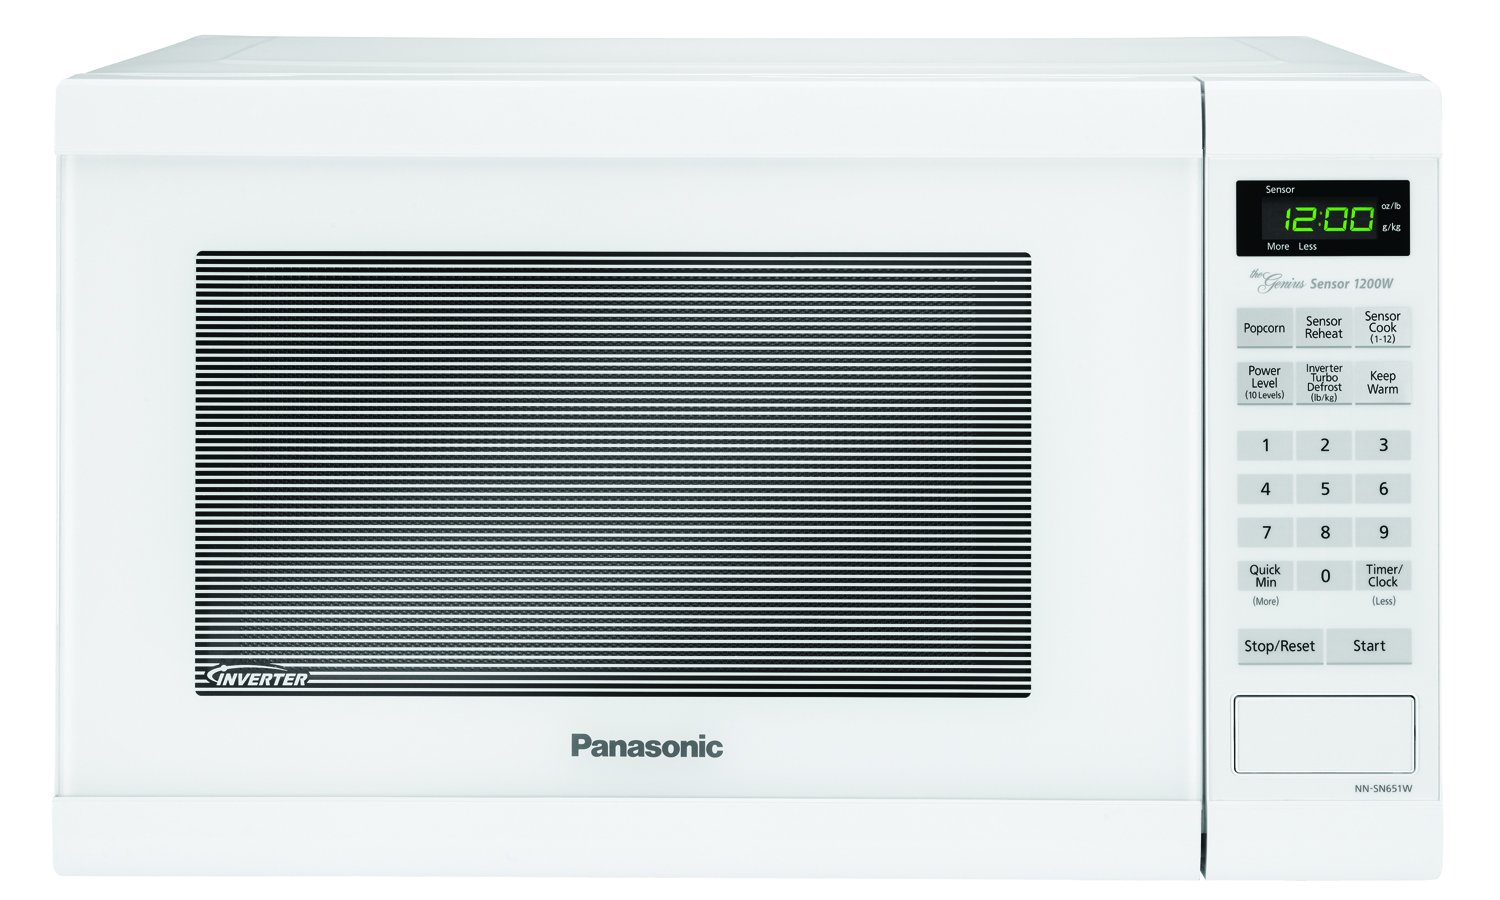 Panasonic Countertop Microwave with Inverter Technology, 1.2 cu. ft., White by Panasonic